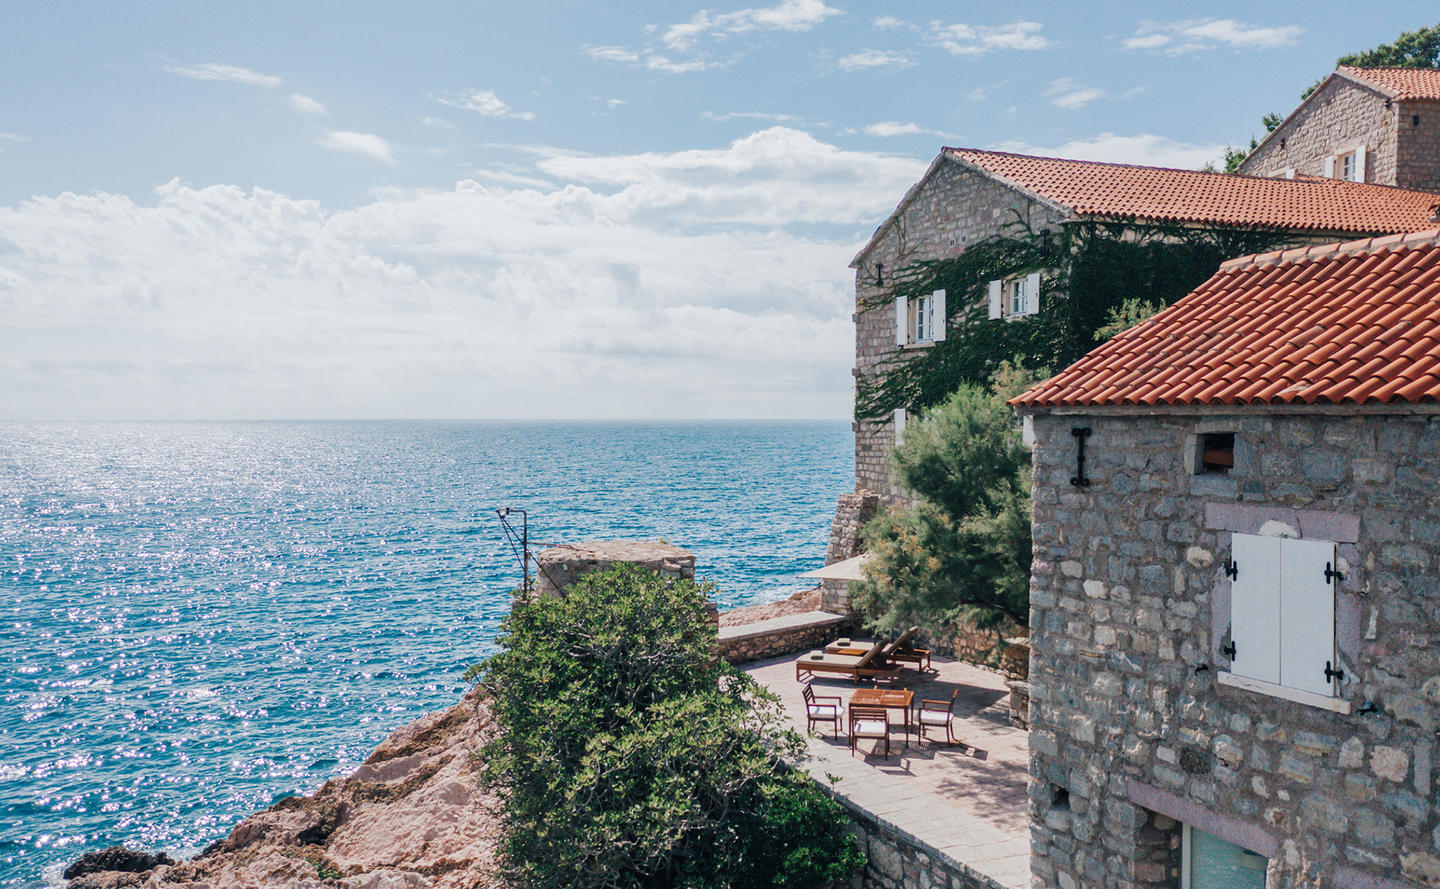 Private Terrace & Views of the Adriatic, Deluxe Cottage - Aman Sveti Stefan, Montenegro